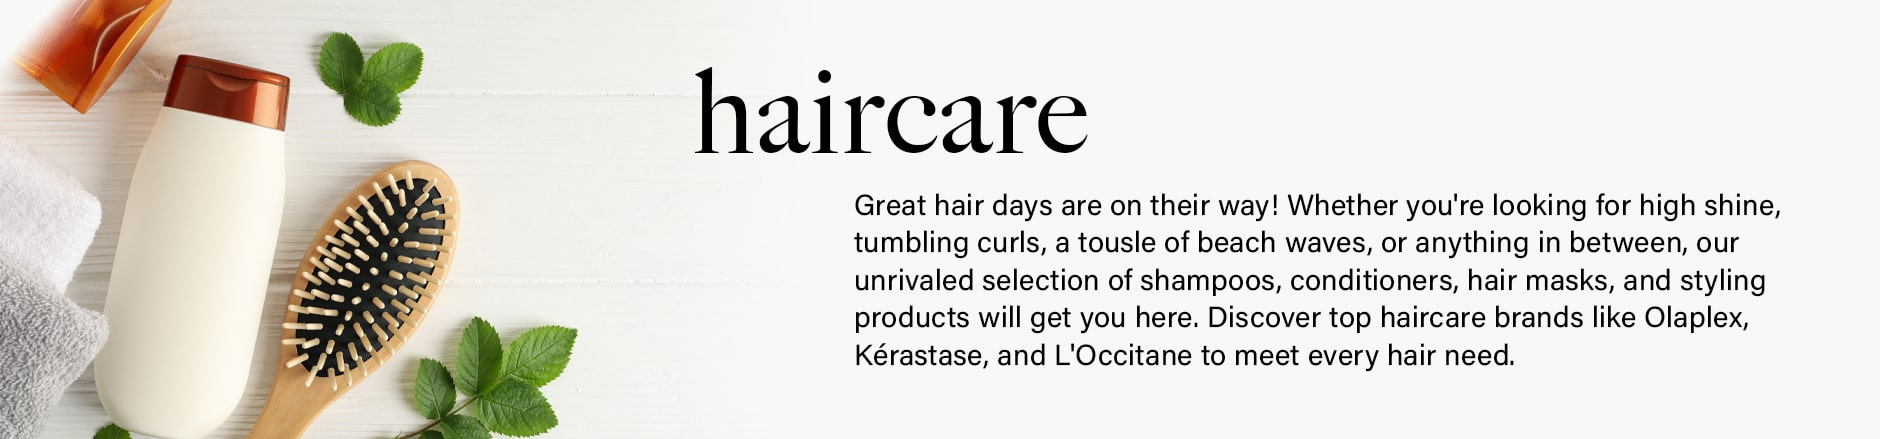 hair-care-collection-banner-image